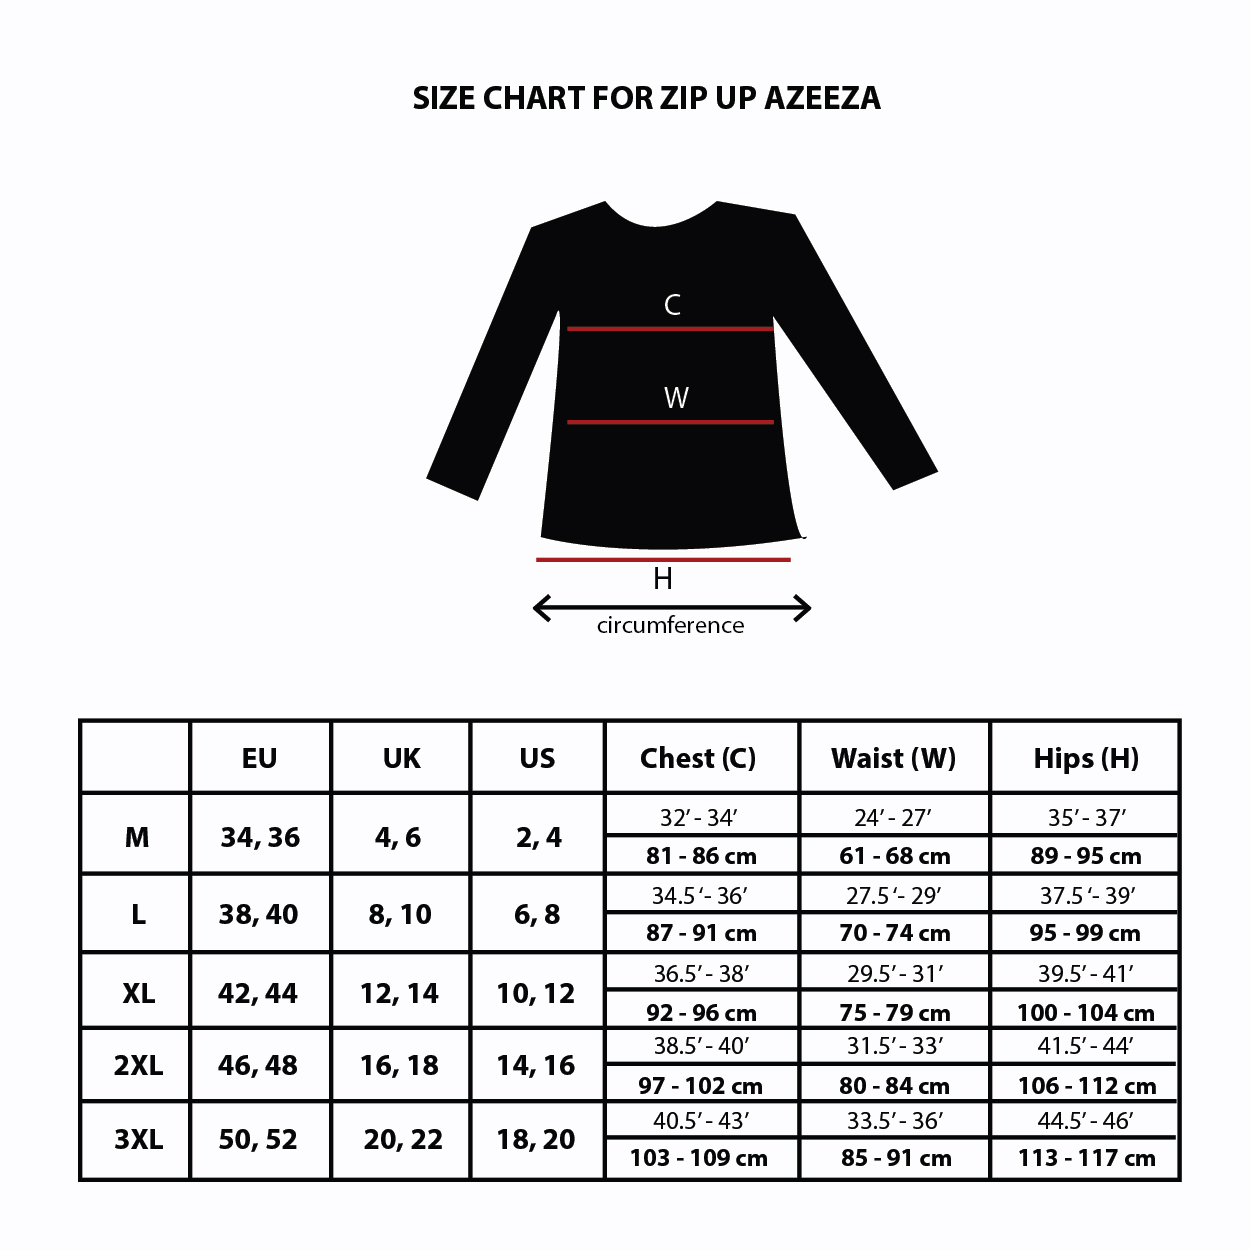 General%20Size%20Chart%20-%20Top%20(zip%